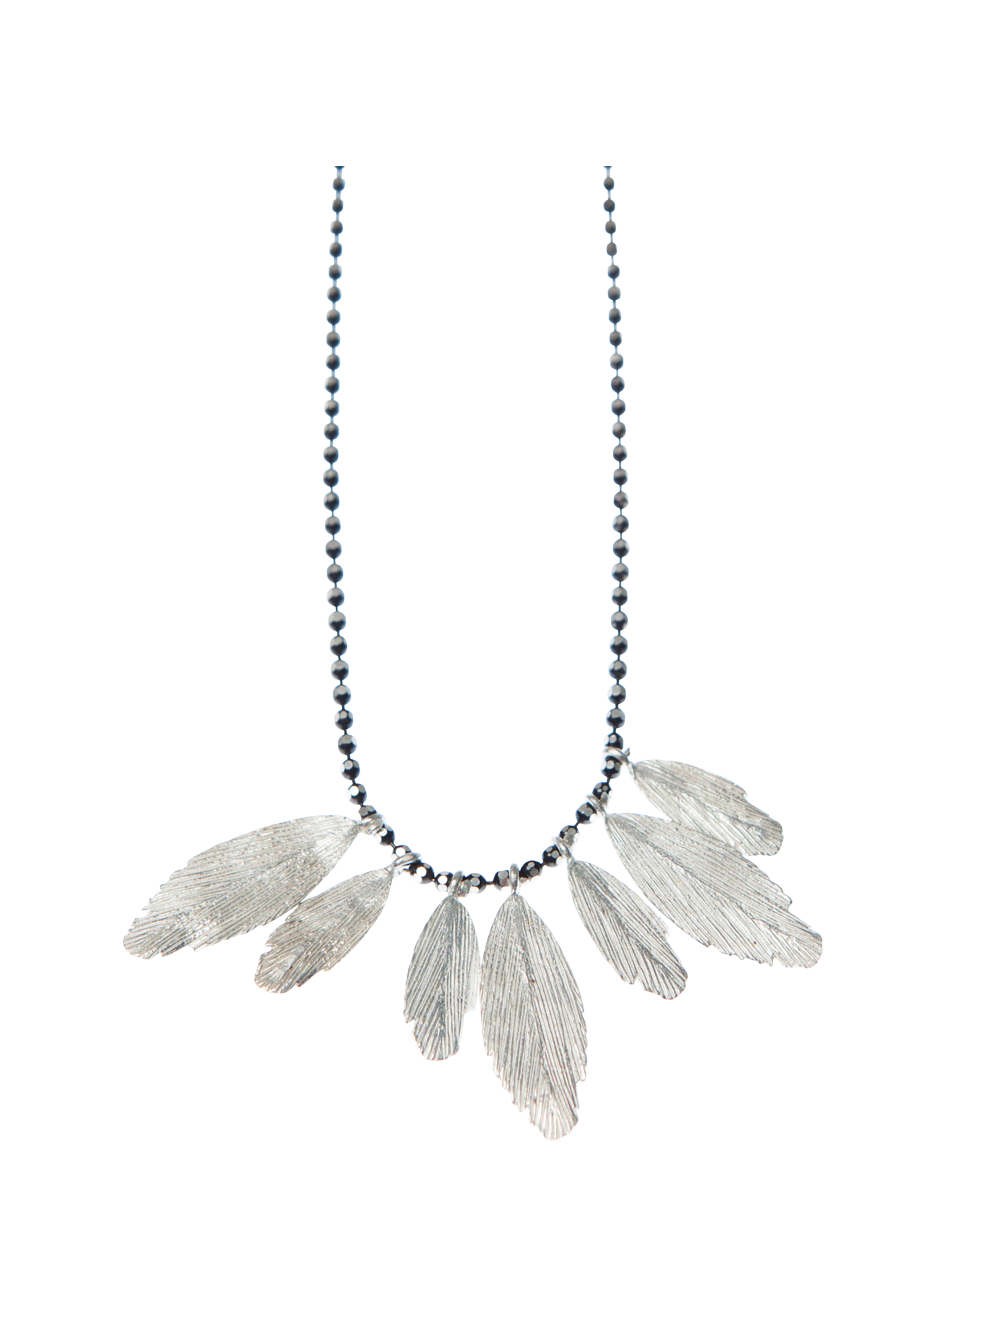 Silver Multiple Raven Feathers Necklace by Aurum - Art Jewellery Store: Song of Jewellery